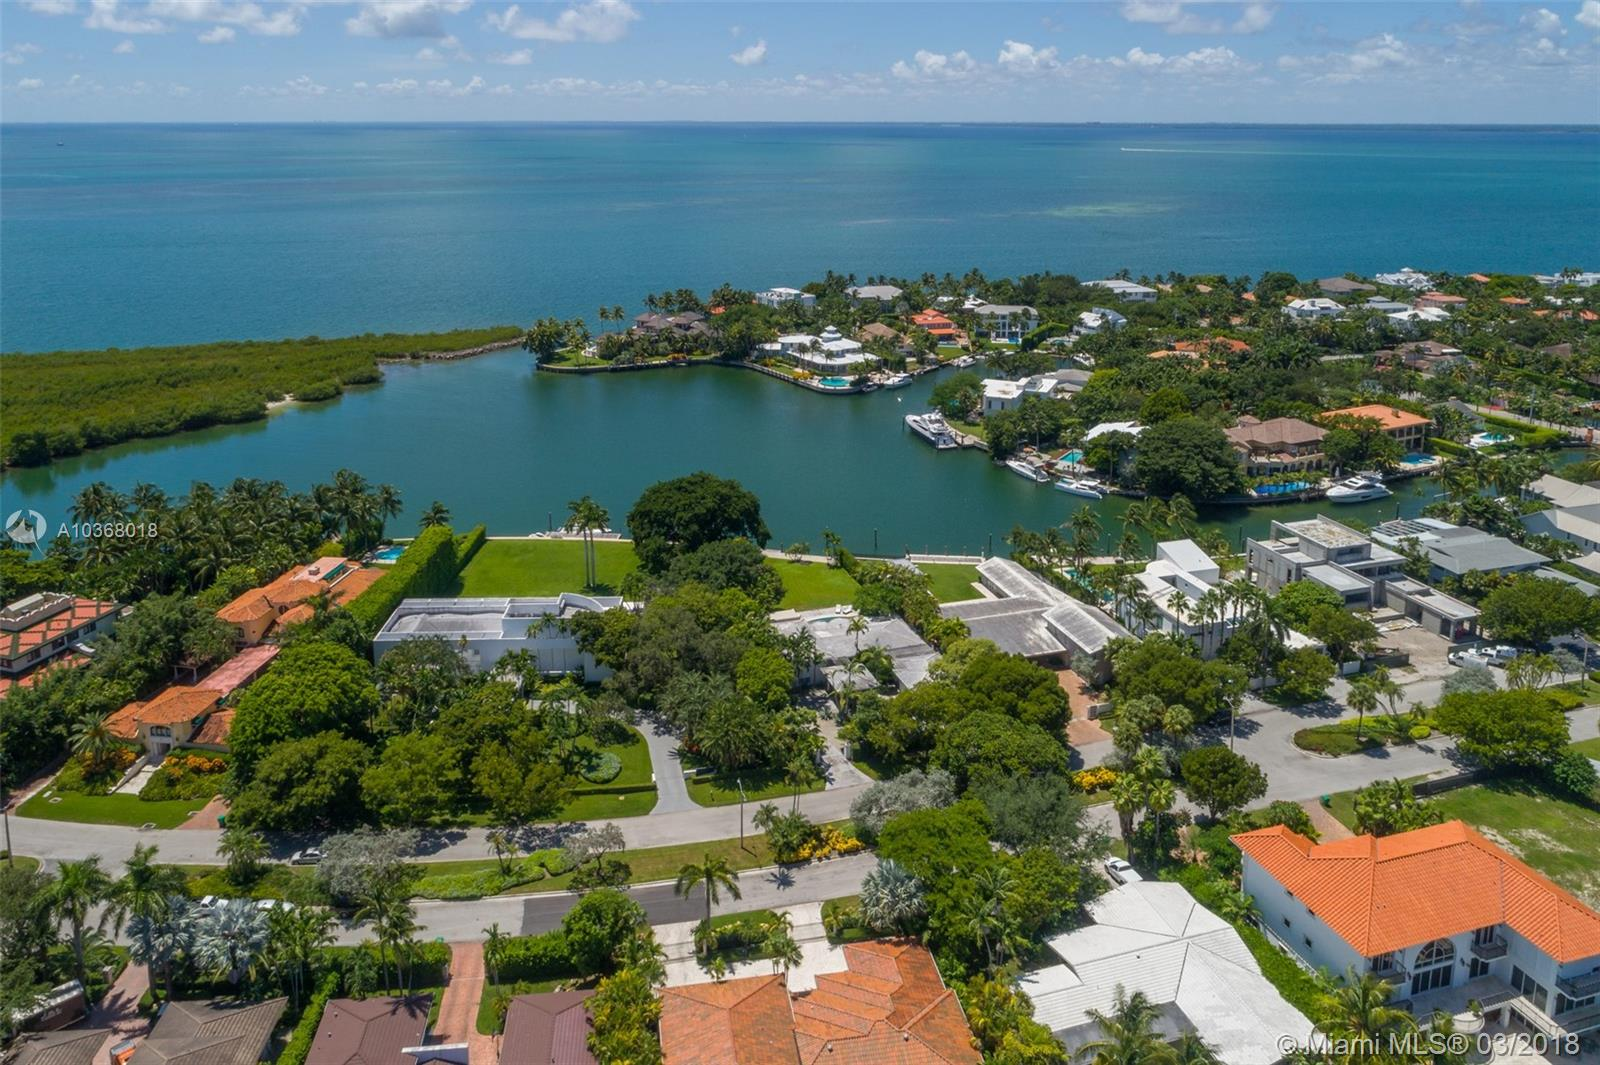 Create And Build Your Perfect Home On This Incredible And Very Spacious Property With 24, 473 Sq Ft Of Land As Per Miami Dade County. Enjoy The Gorgeous And Breathtaking Views Of The Harbor And Bay As Well As Being At The End Of Harbor Drive Where It Is Very Quiet And Peaceful. This Is A Boater+Ógé¼Gäós Paradise.